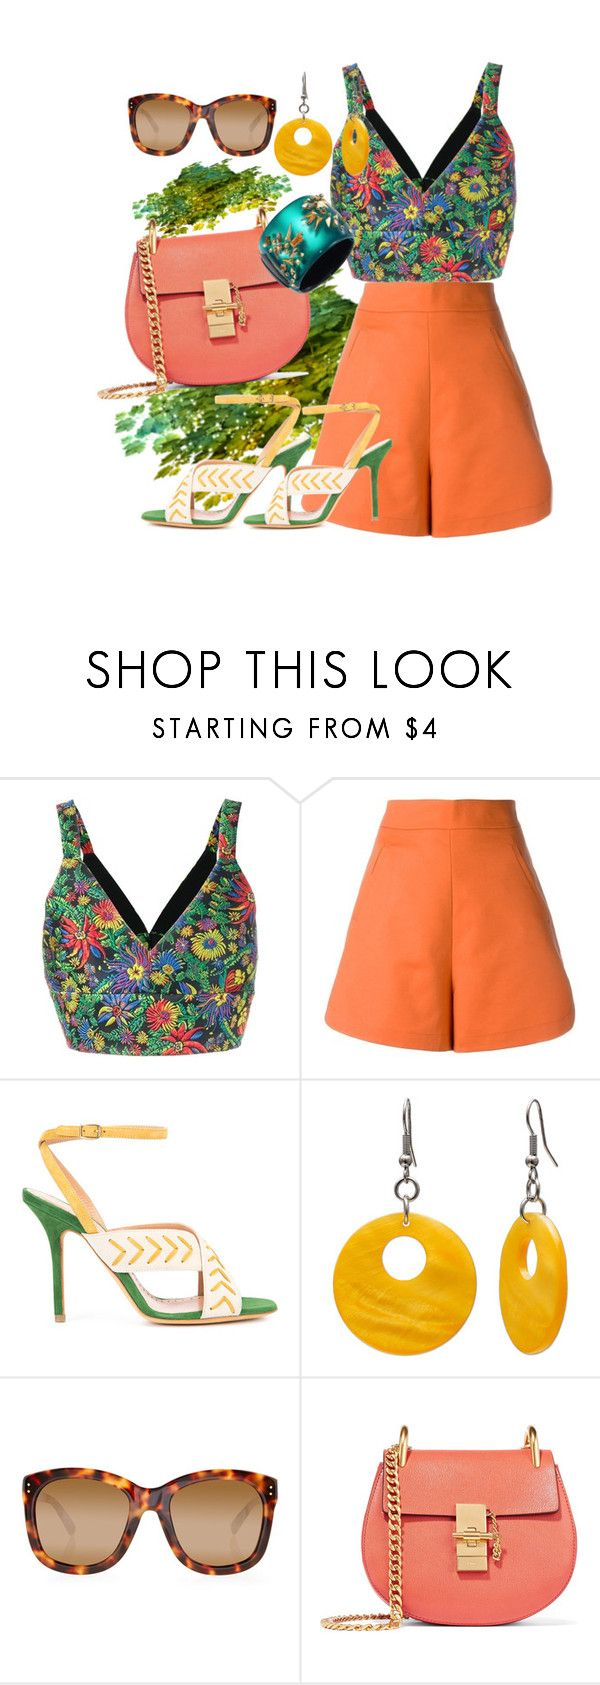 """""""Untitled #461"""" by pesanjsp ❤ liked on Polyvore featuring 3.1 Phillip Lim, Andrea Marques, ALEXA WAGNER, Mixit, Linda Farrow, Chloé and Alexis Bittar"""